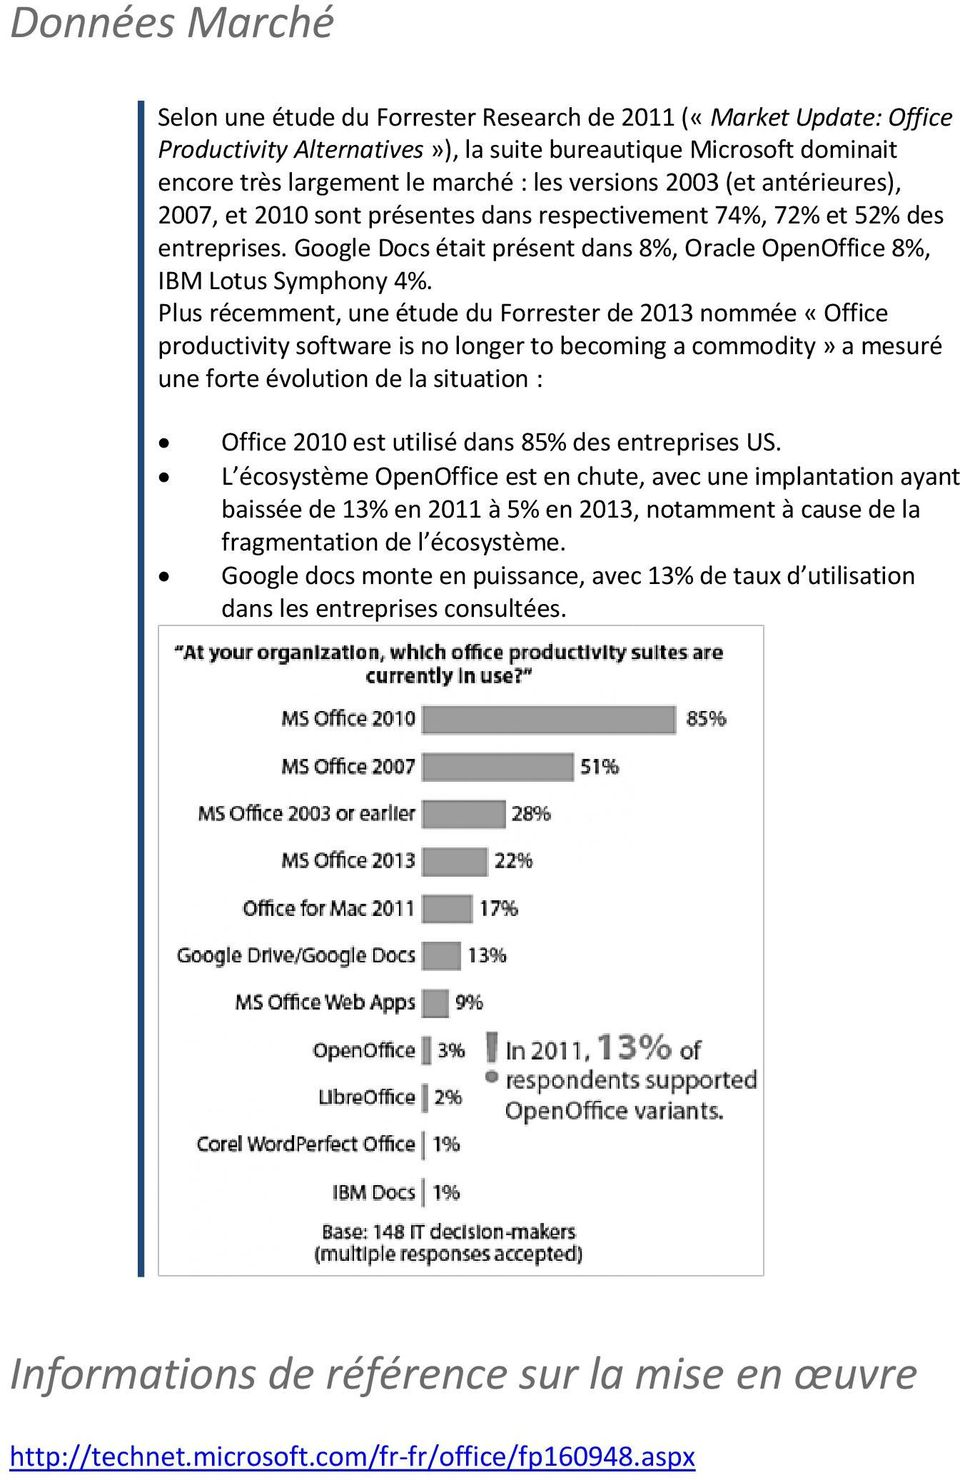 Plus récemment, une étude du Forrester de 2013 nommée «Office productivity software is no longer to becoming a commodity» a mesuré une forte évolution de la situation : Office 2010 est utilisé dans